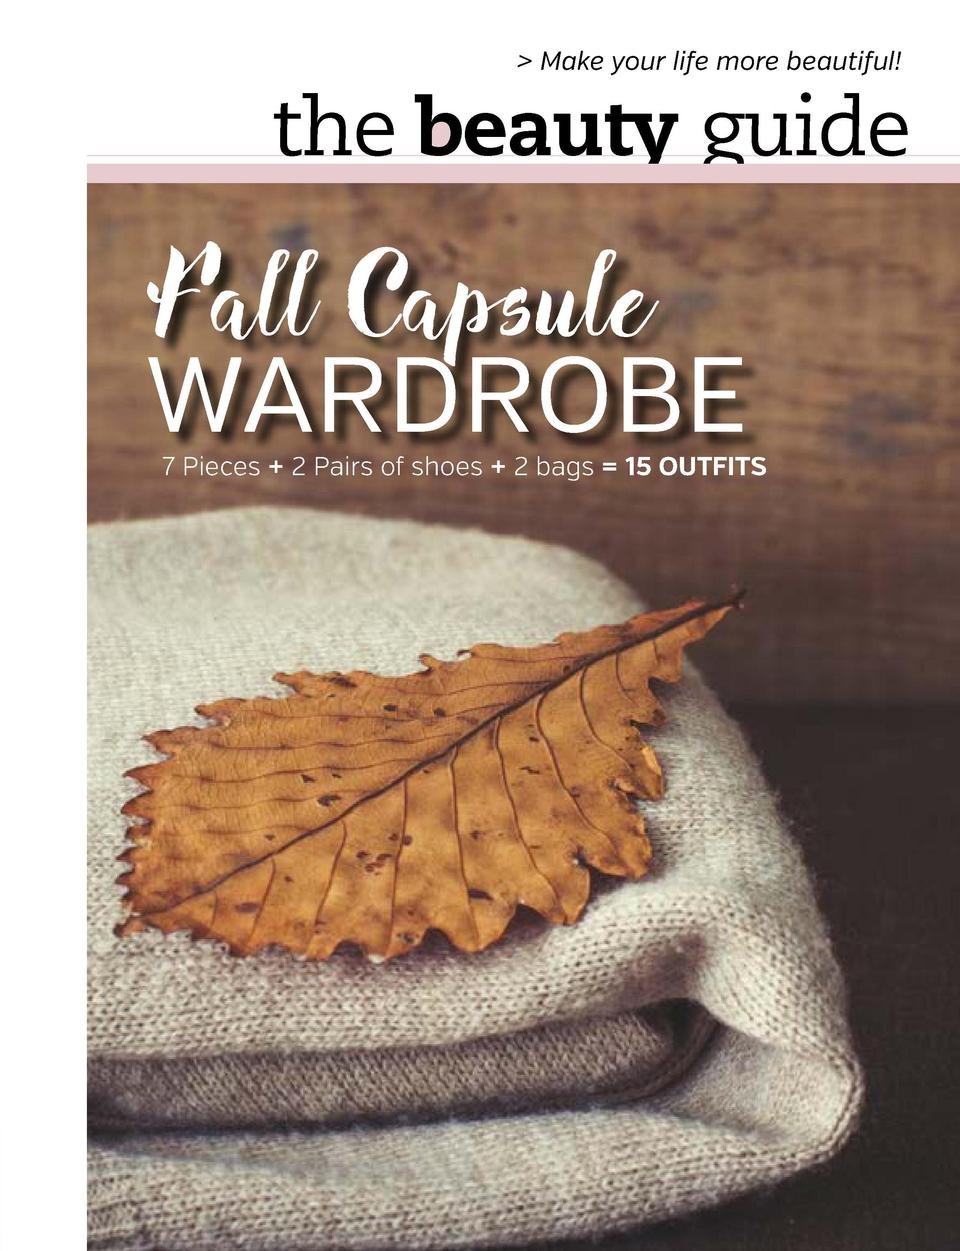 Make your life more beautiful   the beauty guide  Fall Capsule Tip goes here  WARDROBE 31 years of research and developm...